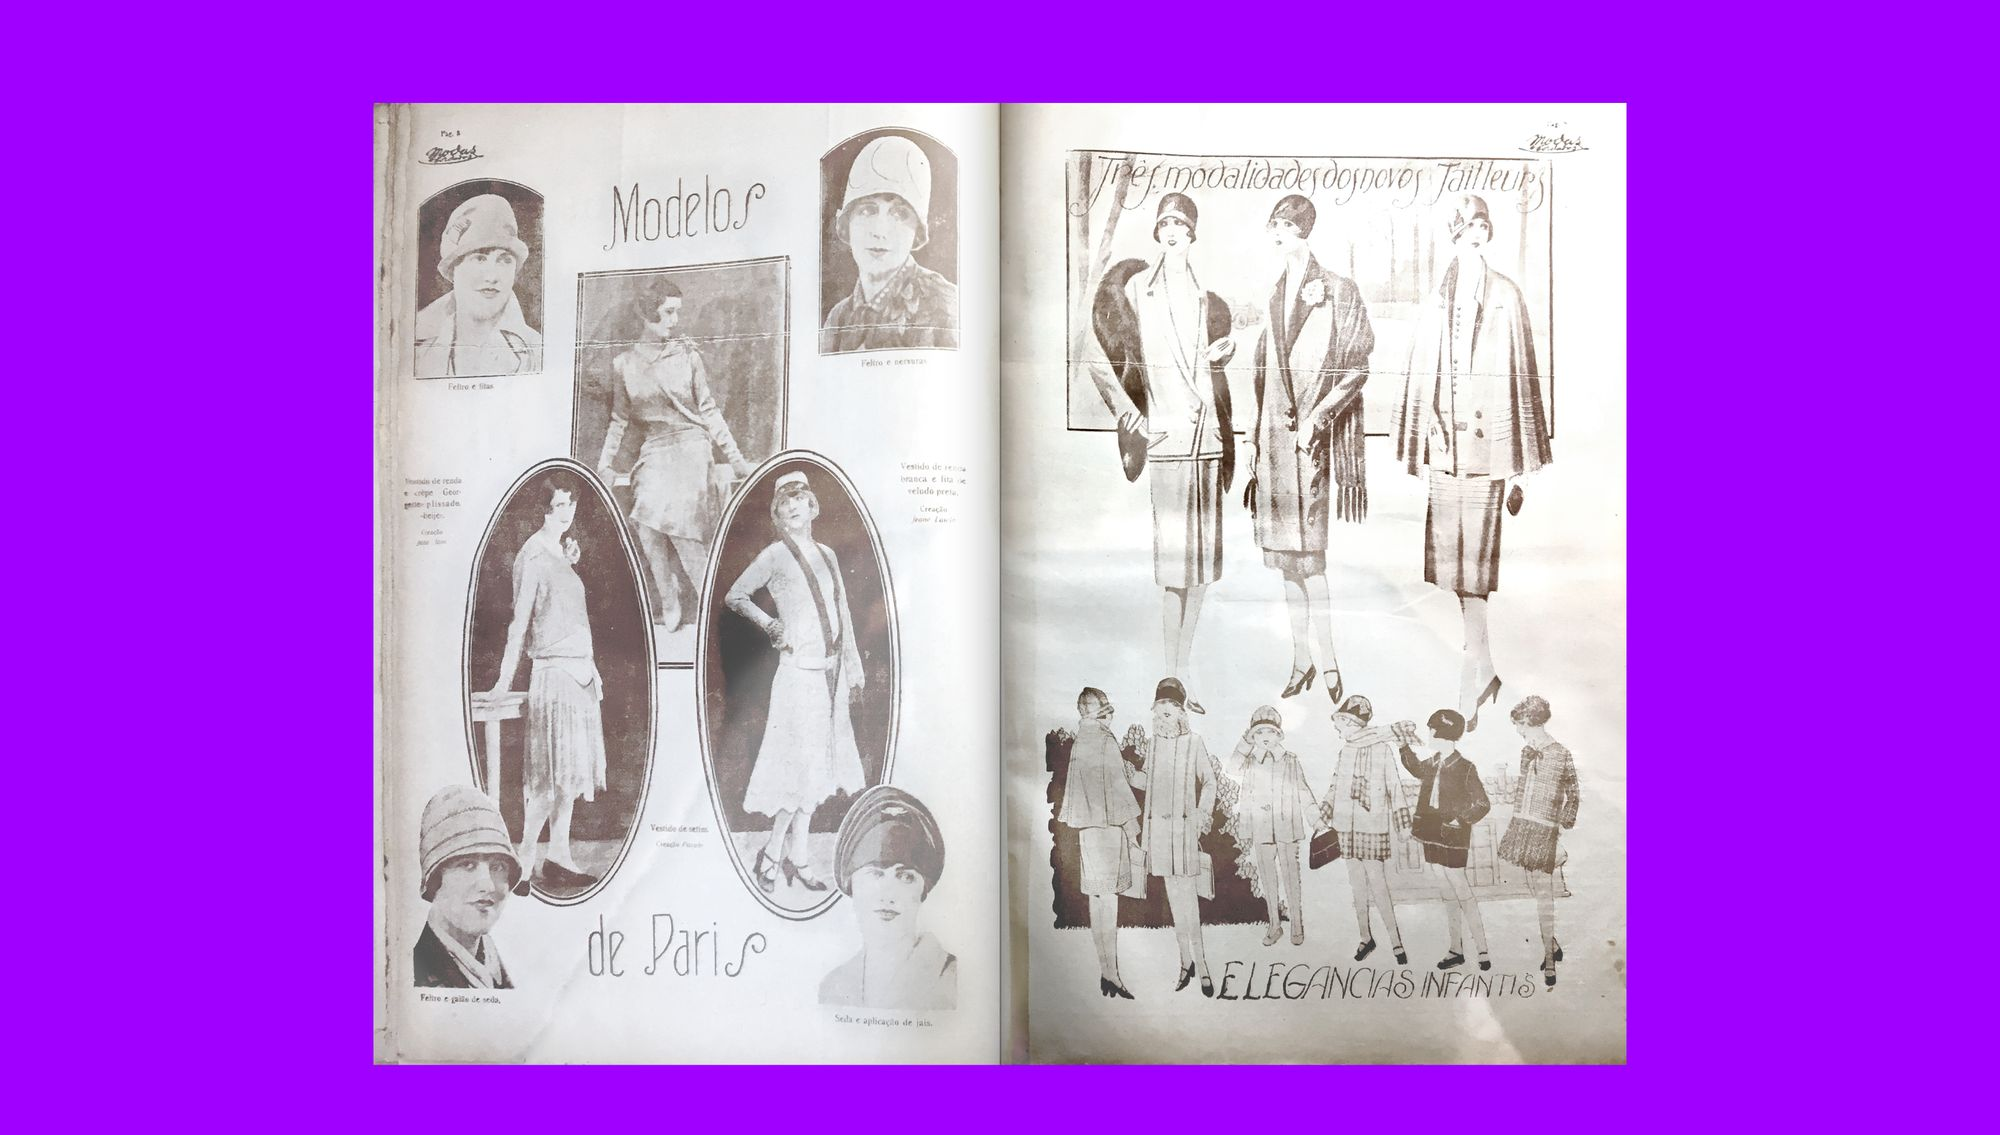 An example of the illustrated centerpiece in an issue of Modas & Bordados from 1929, showing a selection of trends